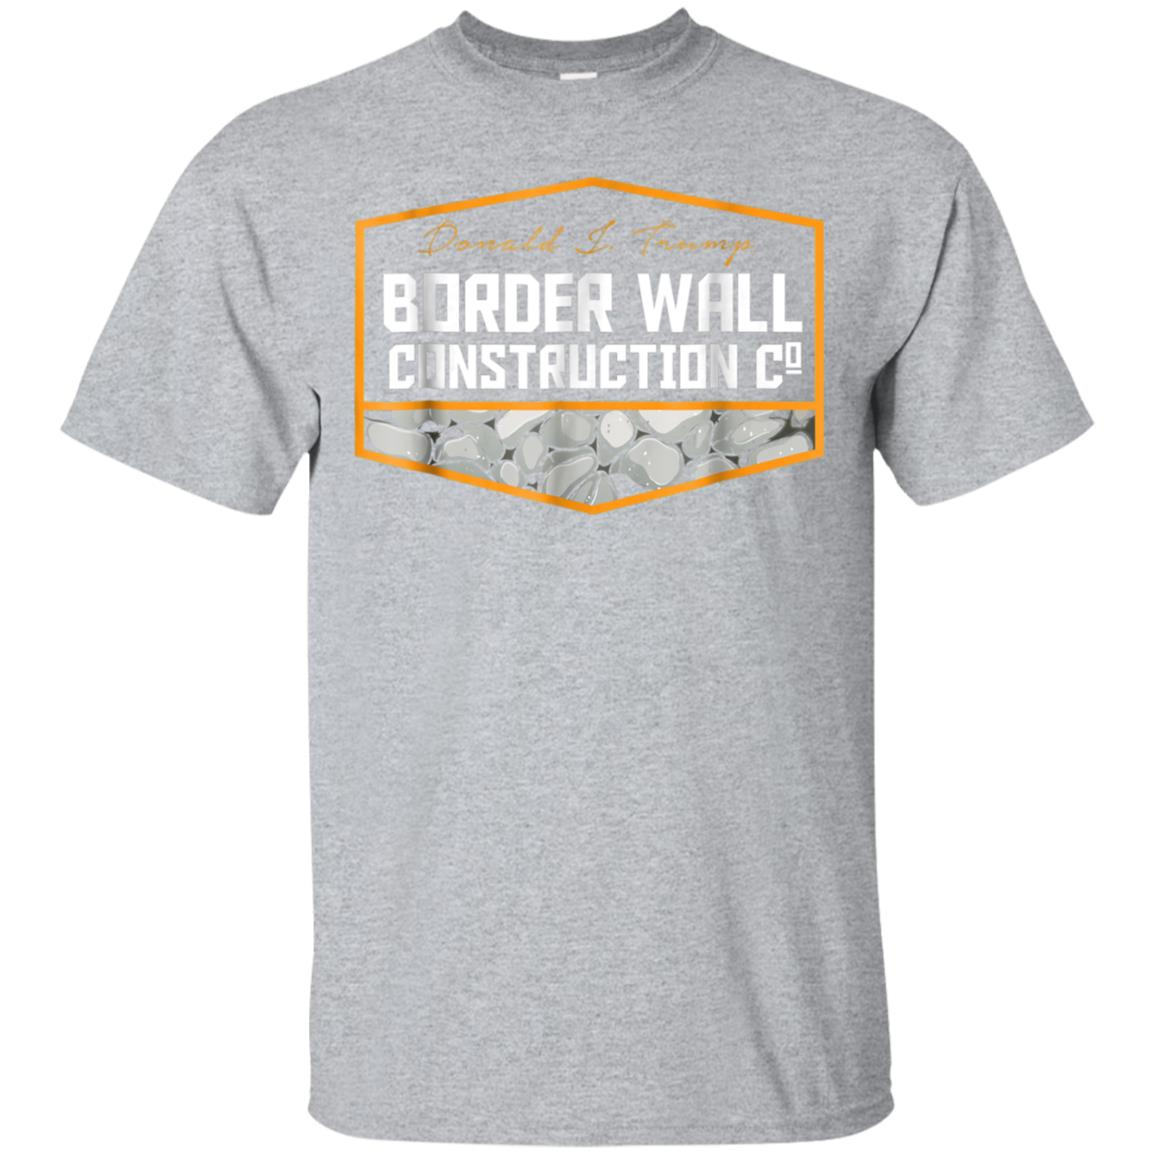 Border Wall Construction Co. Donald J. Trump T-Shirt 99promocode